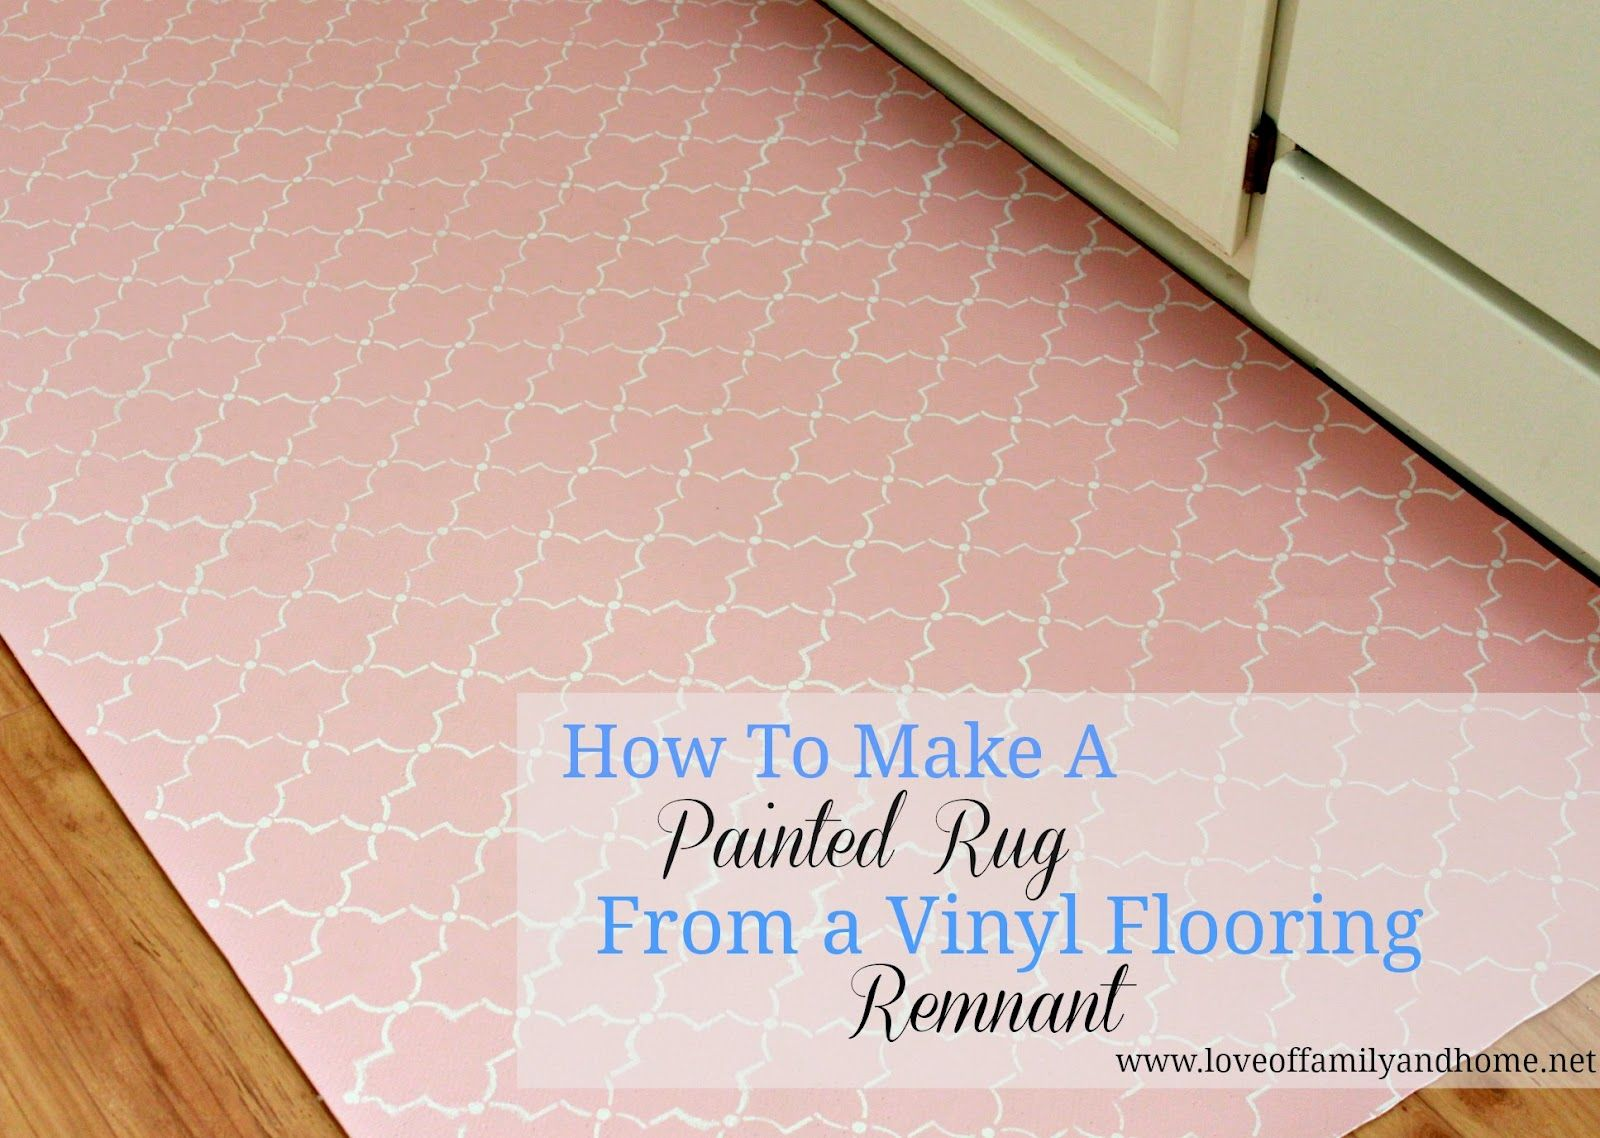 20 Home Diy Projects To Make This Fall Painted Rug